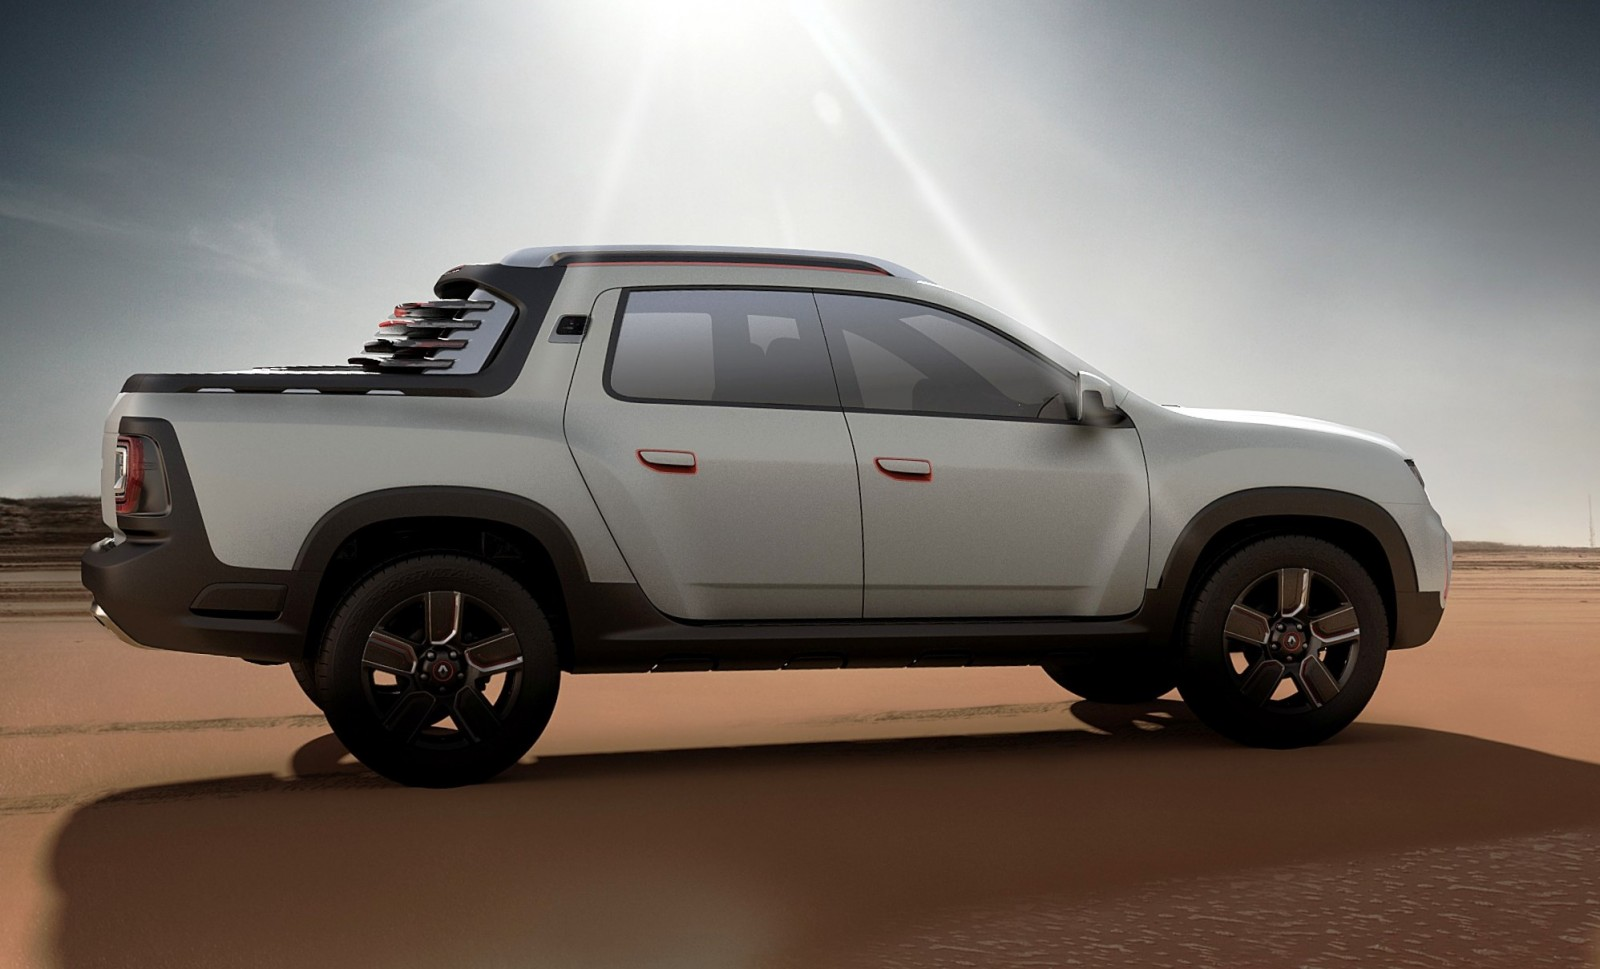 2014 Renault Dacia Duster Oroch 4wd Pickup Truck 11